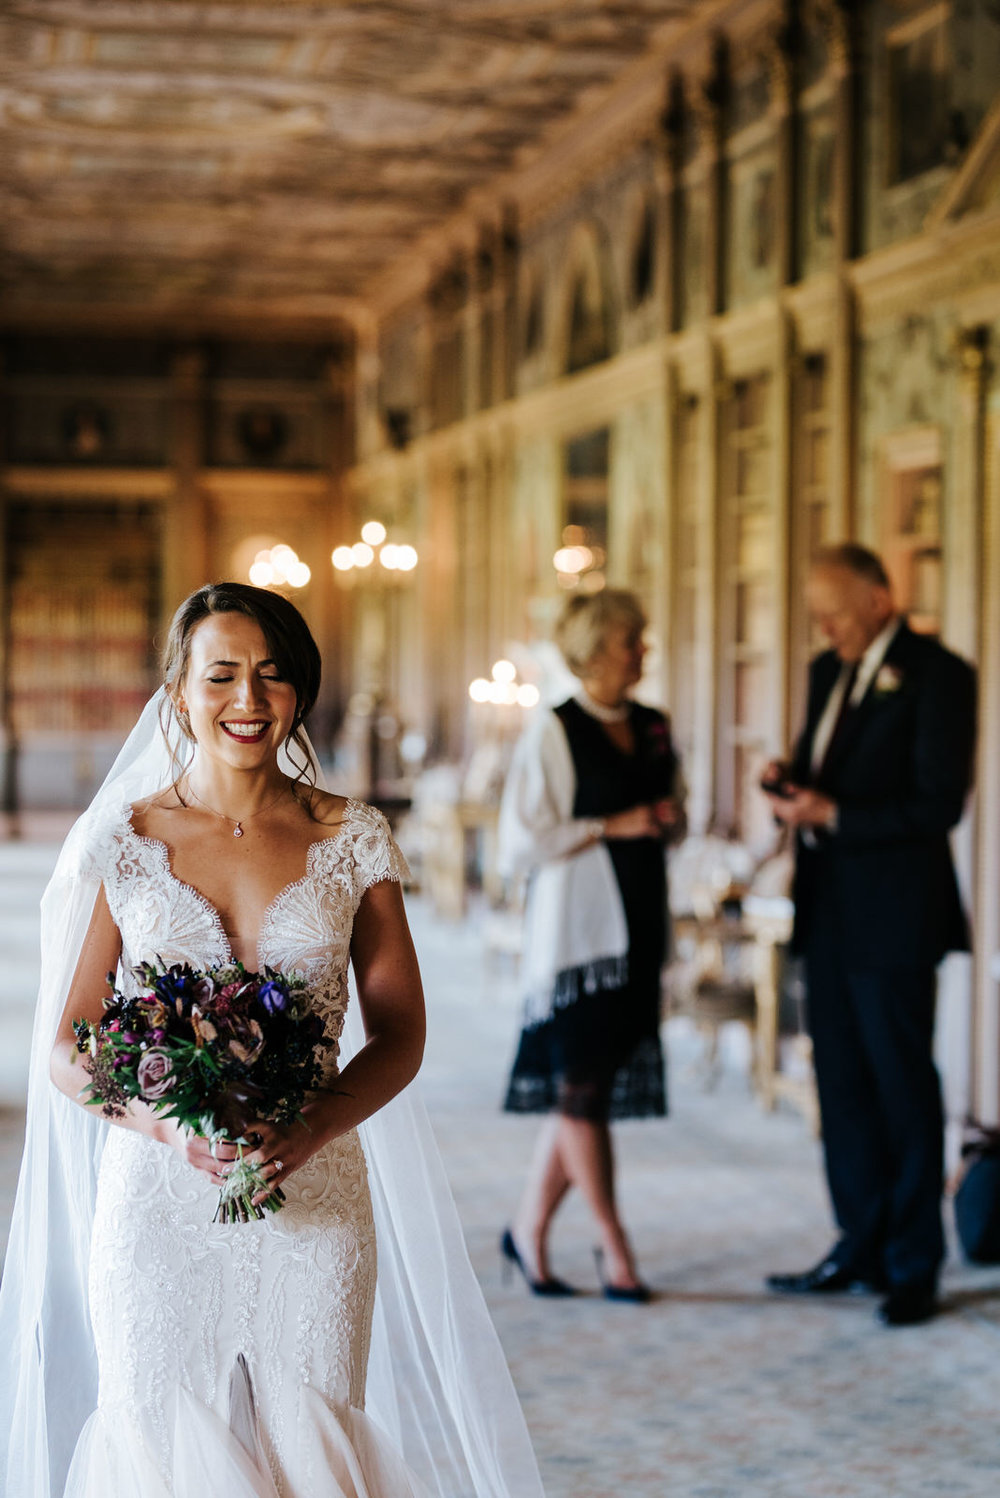 Bride can't contain her excitement and joy minutes before ceremony